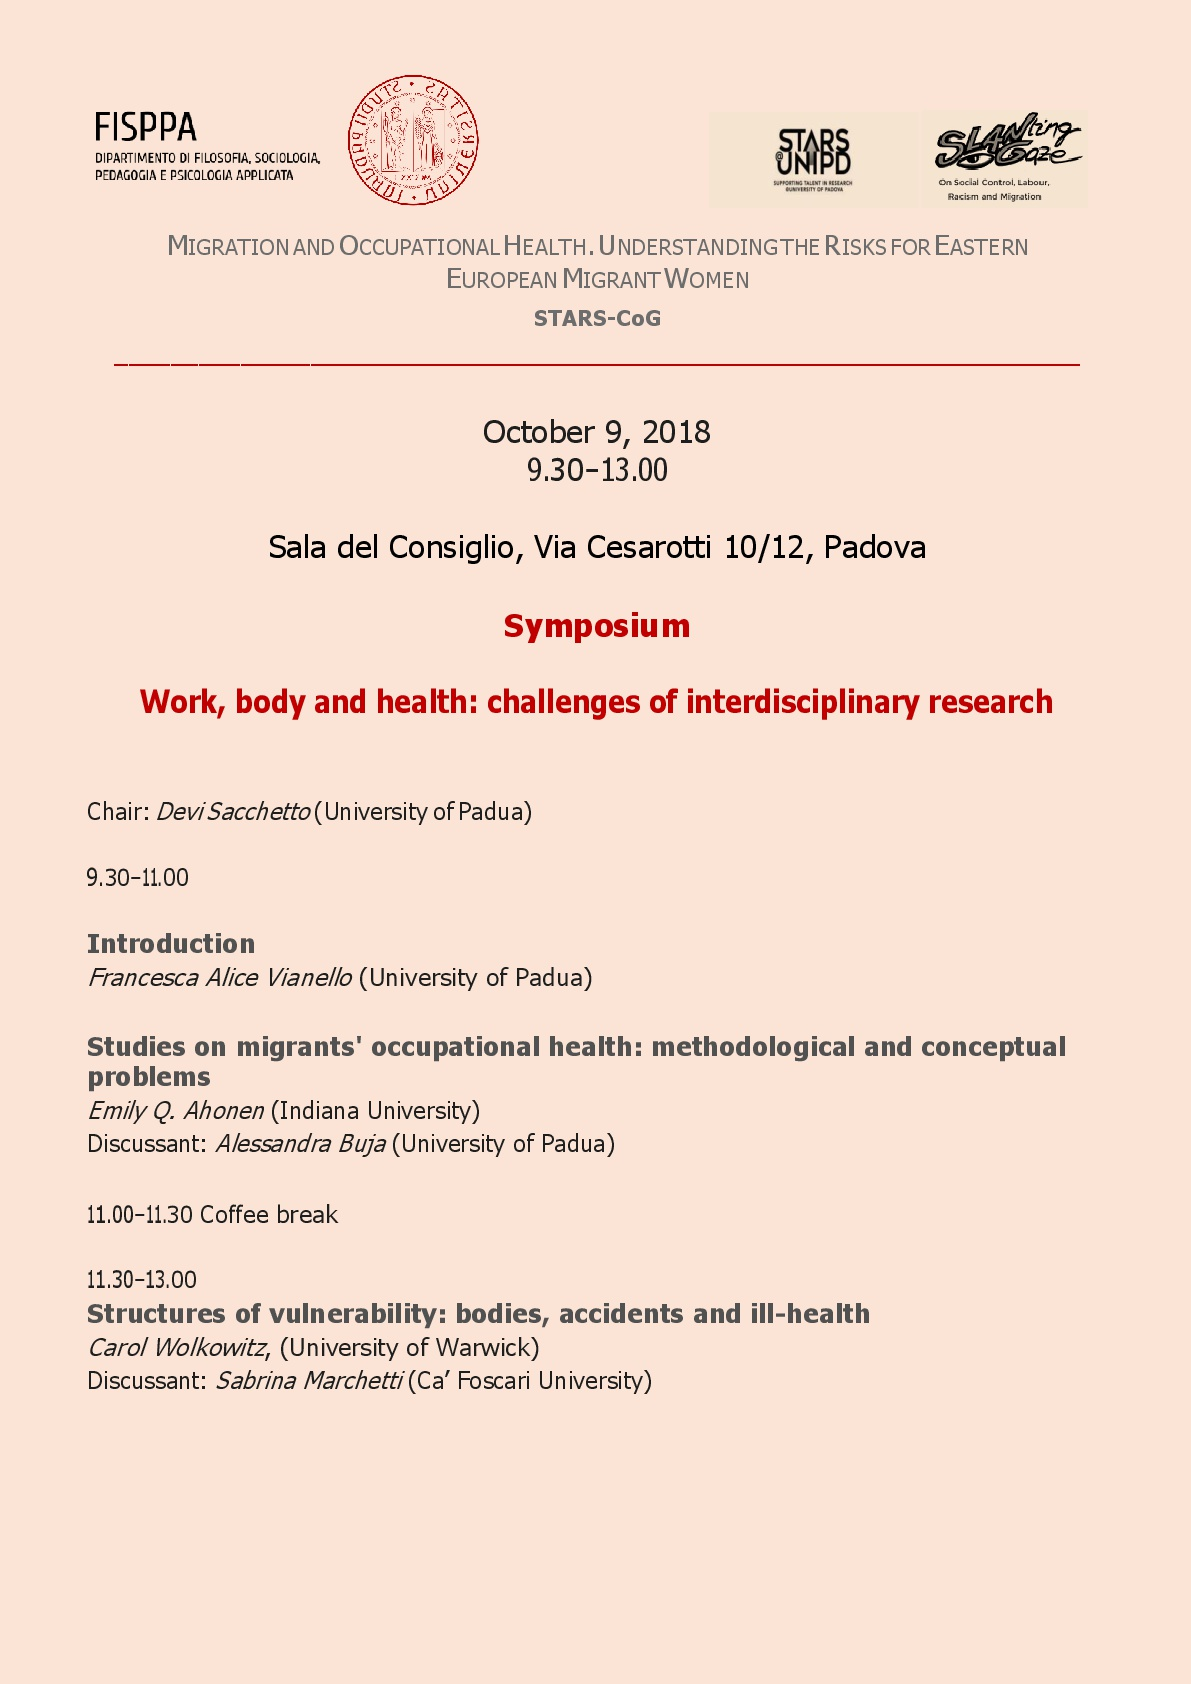 Work, body and health: challenges of interdisciplinary research Thumb